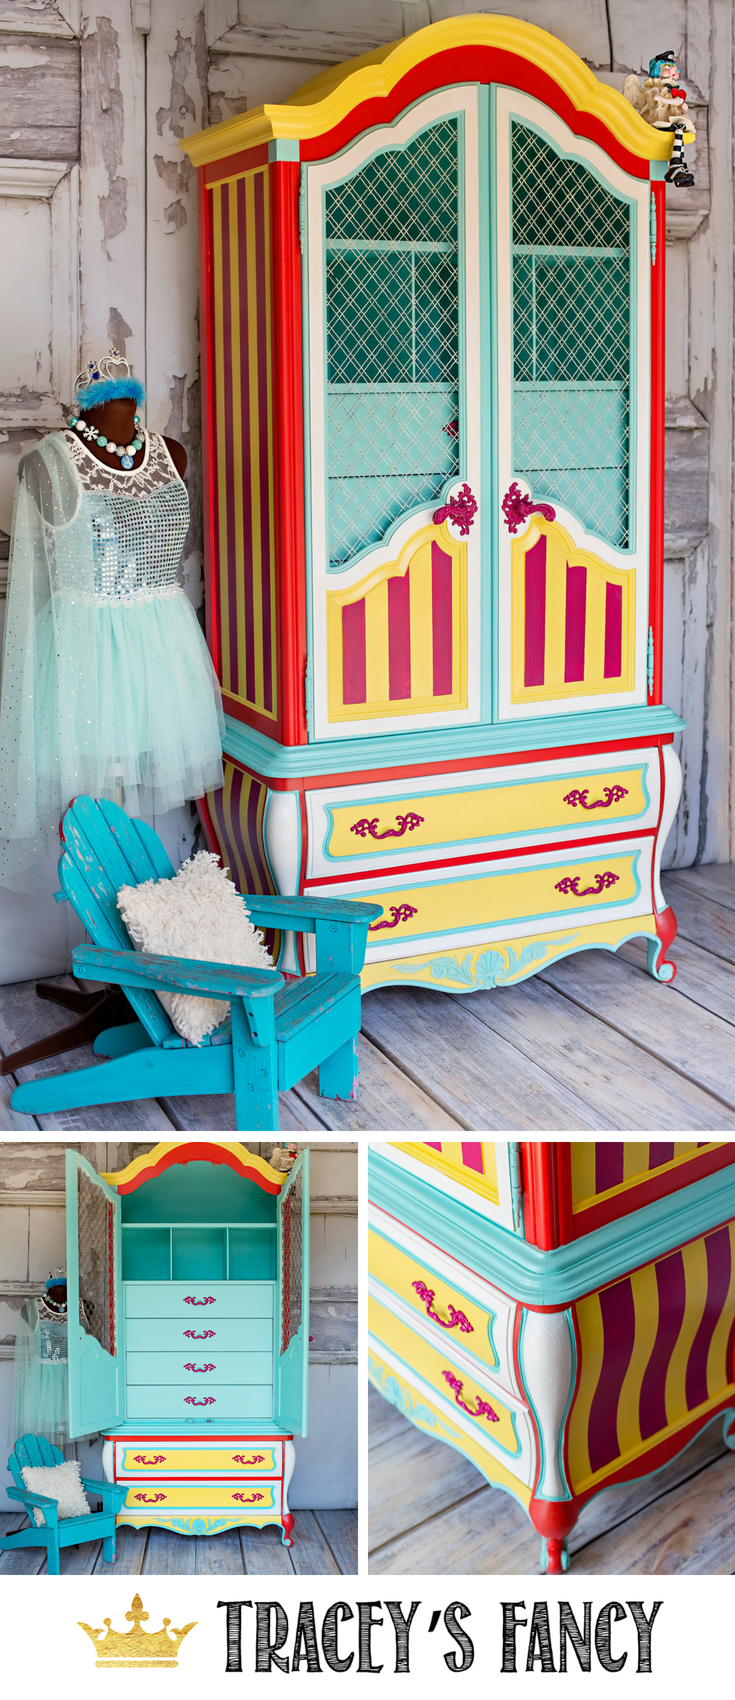 Circus Inspired Whimsical Armoire by Tracey's Fancy _ Painted Furniture Ideas _ Colorful Furniture Ideas _ #furnituremakeover #whimsical #circus